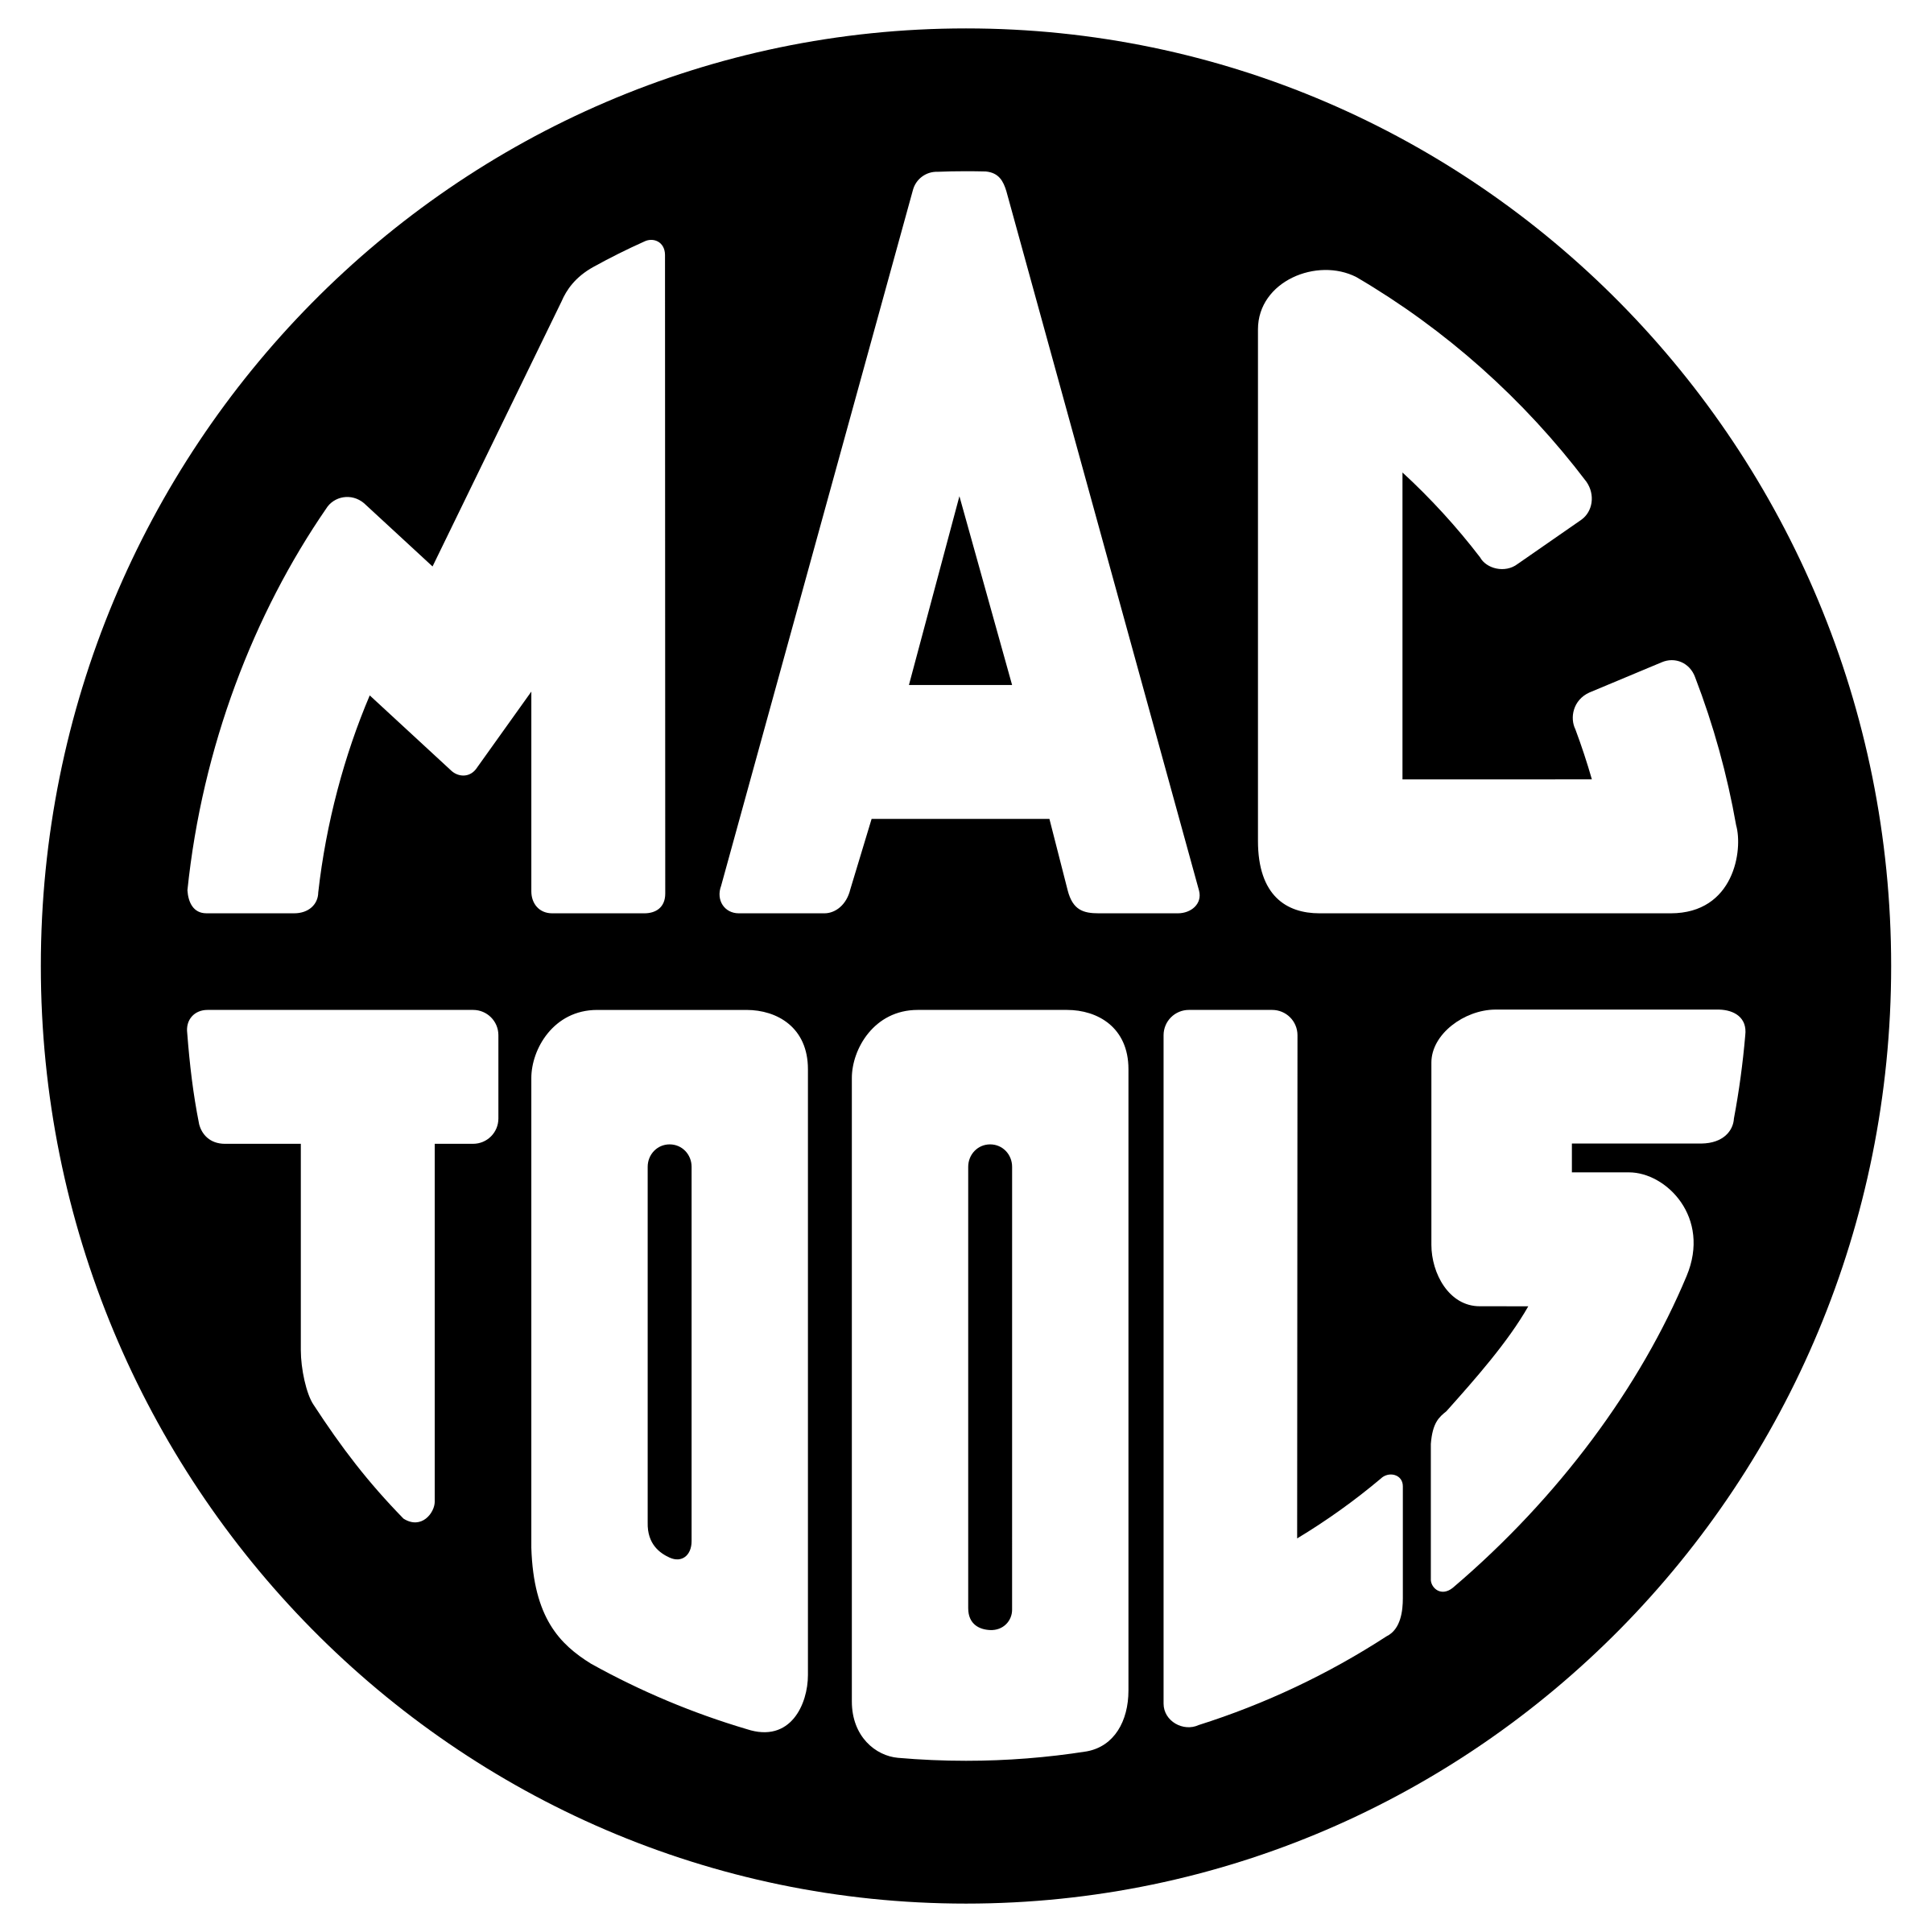 Mac tools logo png. Transparent svg vector freebie